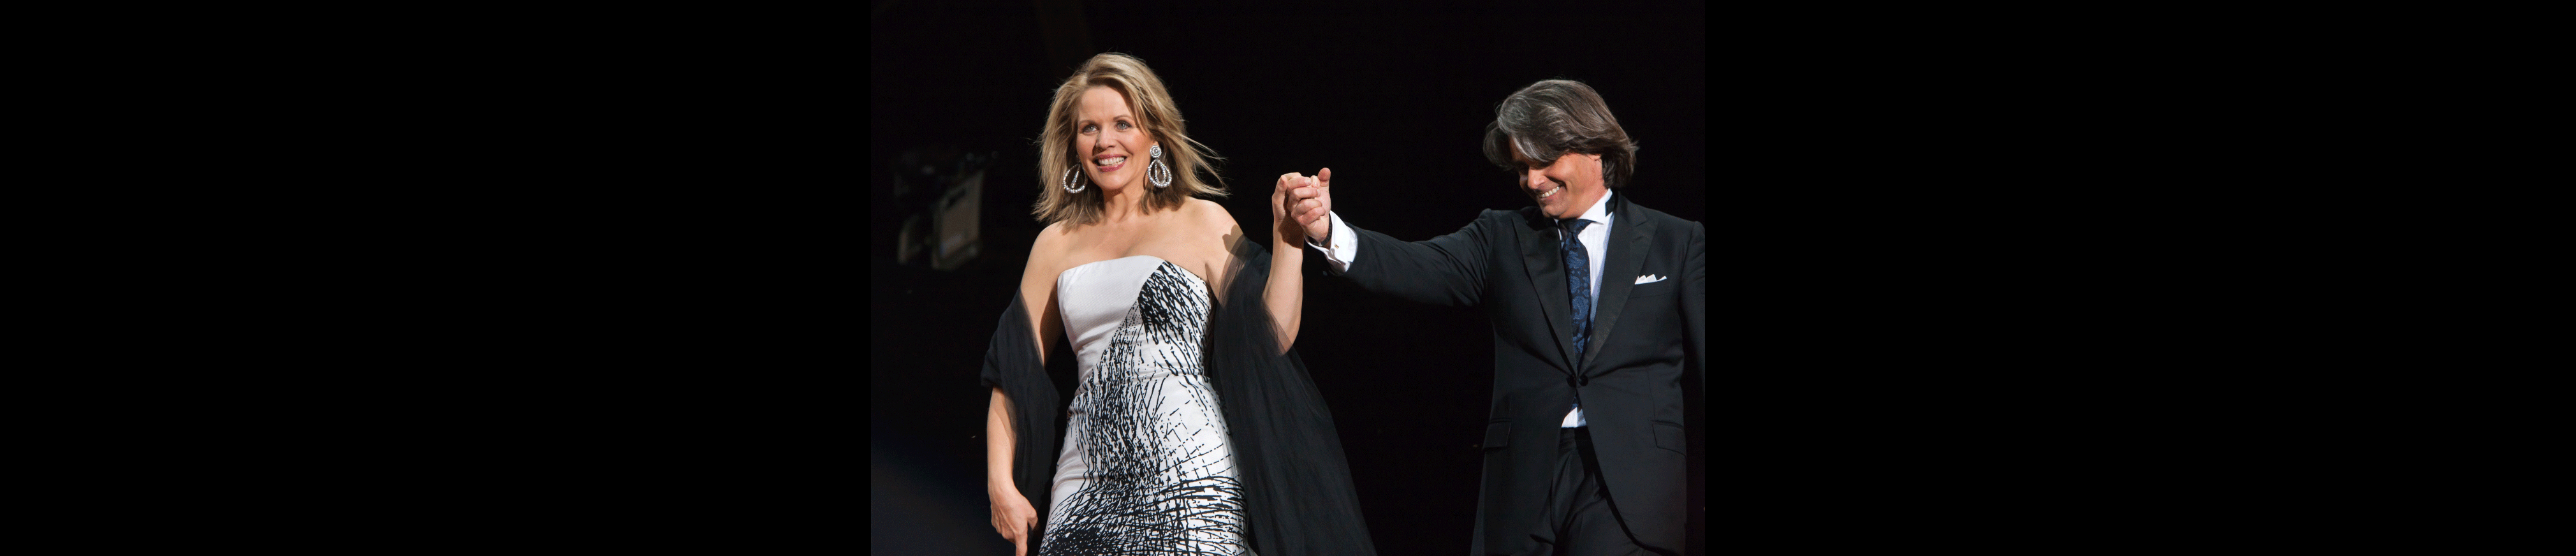 Ion Marin conducts Mussorgsky, Dvořák, Smetana, Khachaturian, Strauss, Wagner... – With Renée Fleming